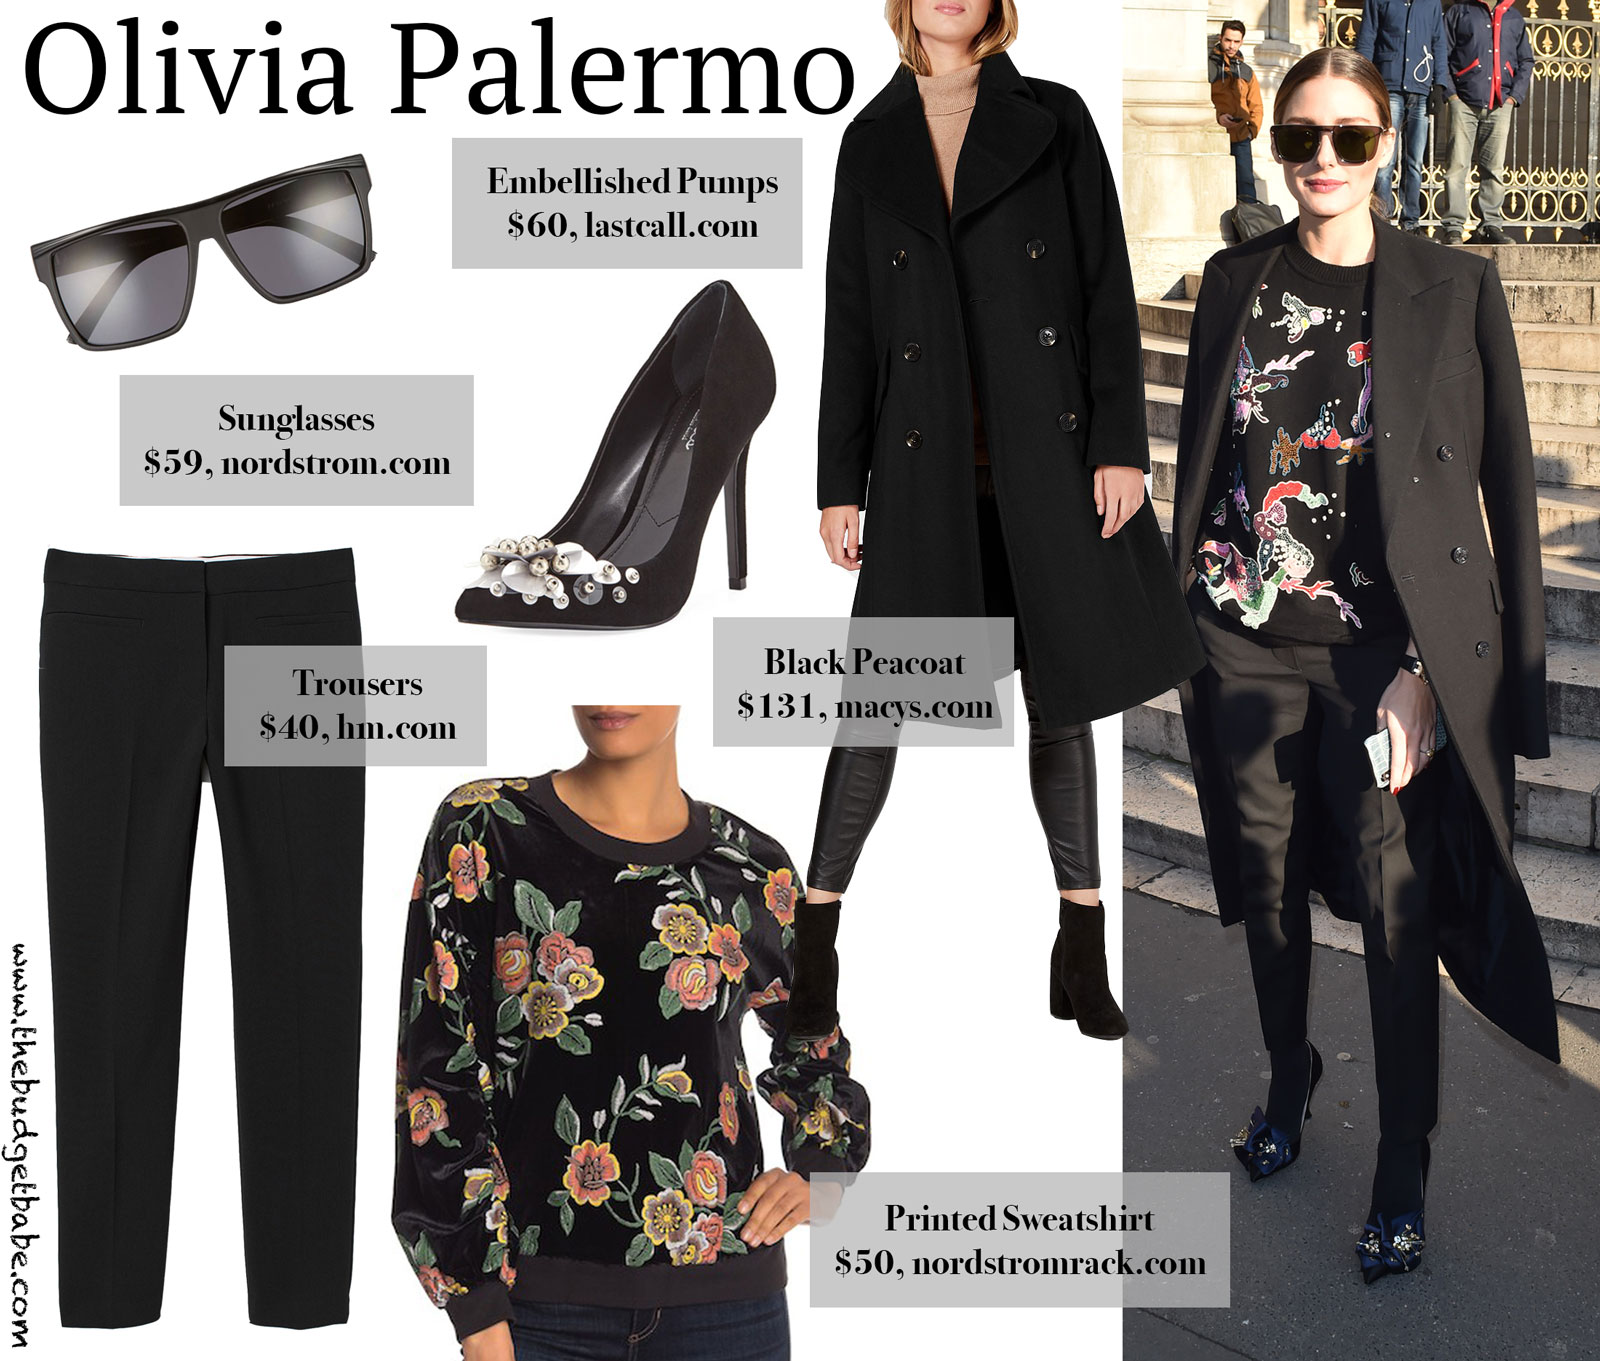 Olivia Palermo Printed Sweatshirt and Peacoat Look for Less